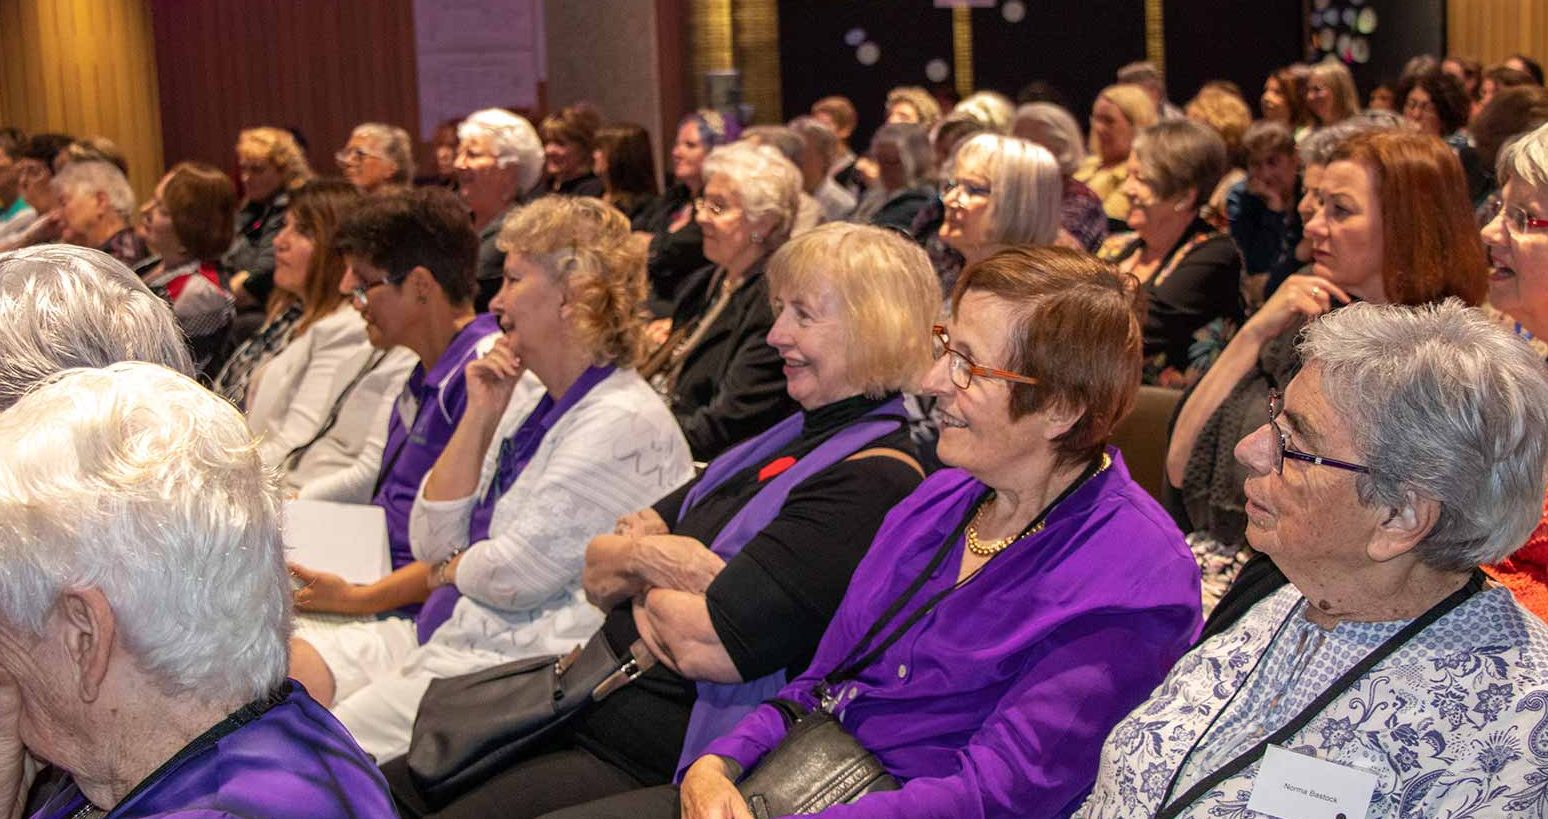 Audience members at the National Conference of the National Older Women's Network 2019